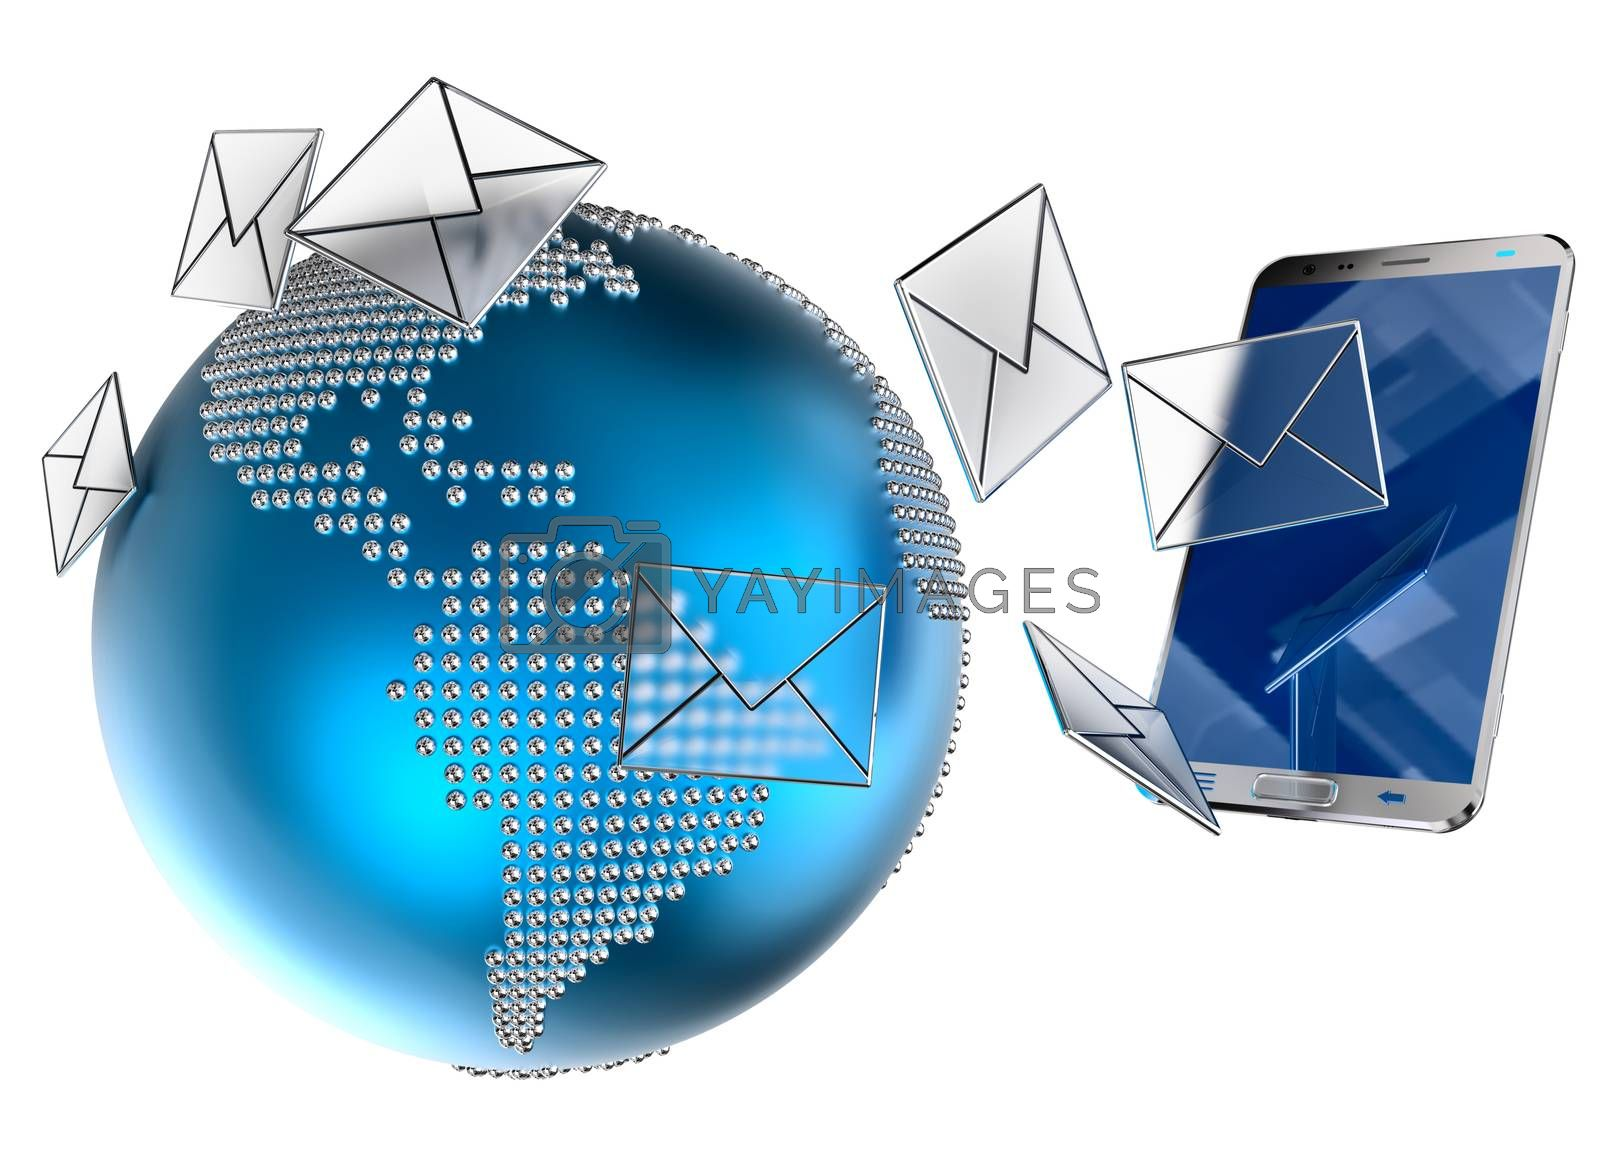 A lot of envelopes, as e-mail or sms, sent to the mobile phone on white background. 3d illustration concept background.